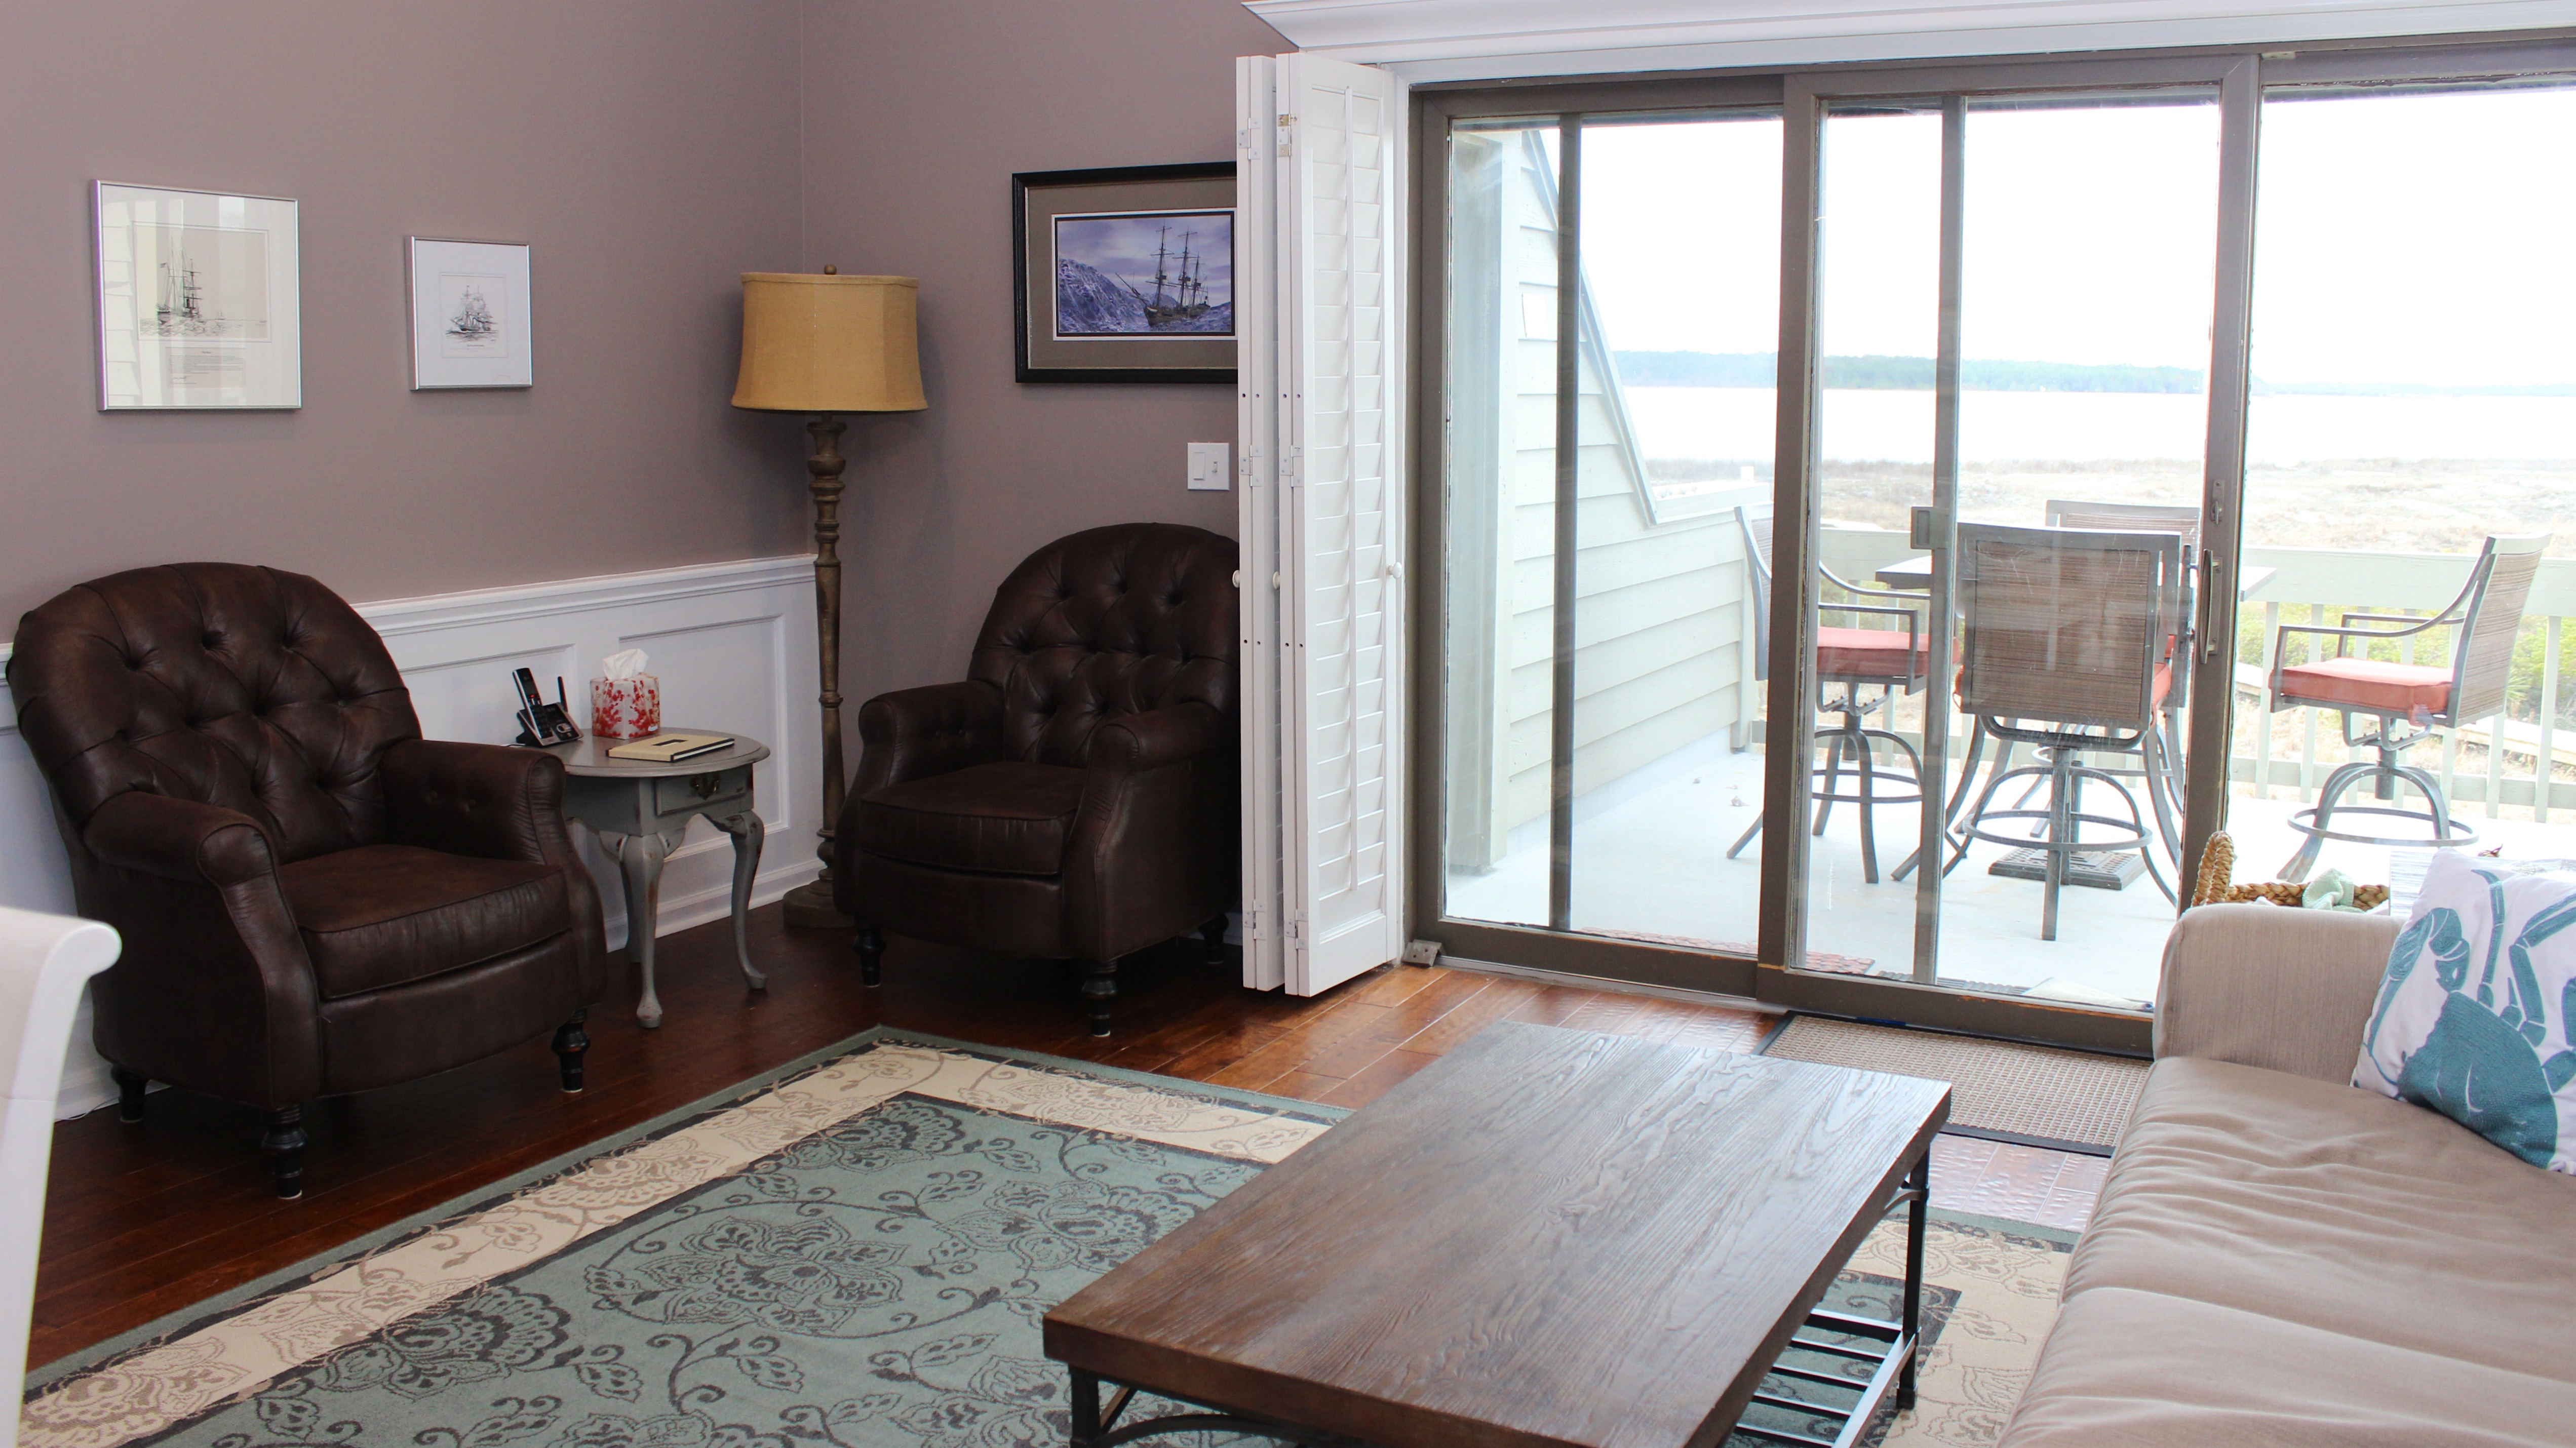 Enjoy the views of the ocean and Edisto River from the living room.